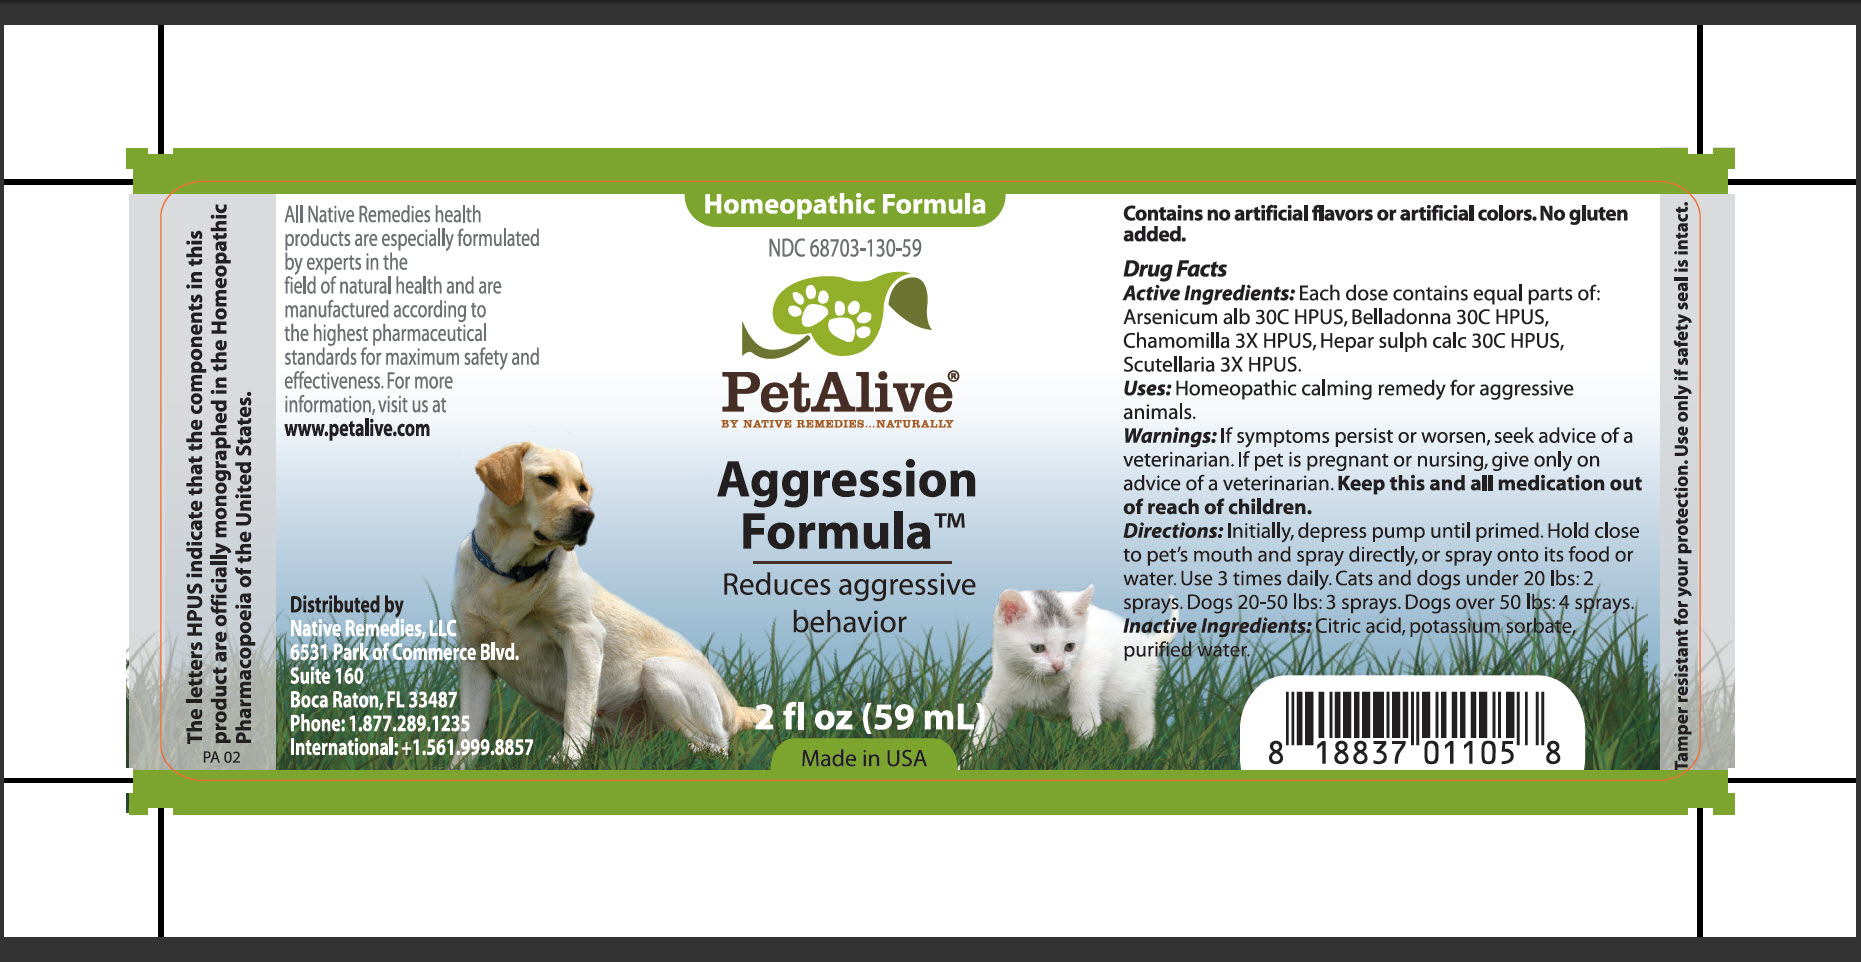 Aggression Formula (Arsenicum Alb, Belladona, Chamomilla, Hepar Sulph Calc, Scutellaria) Spray [Native Remedies, Llc]